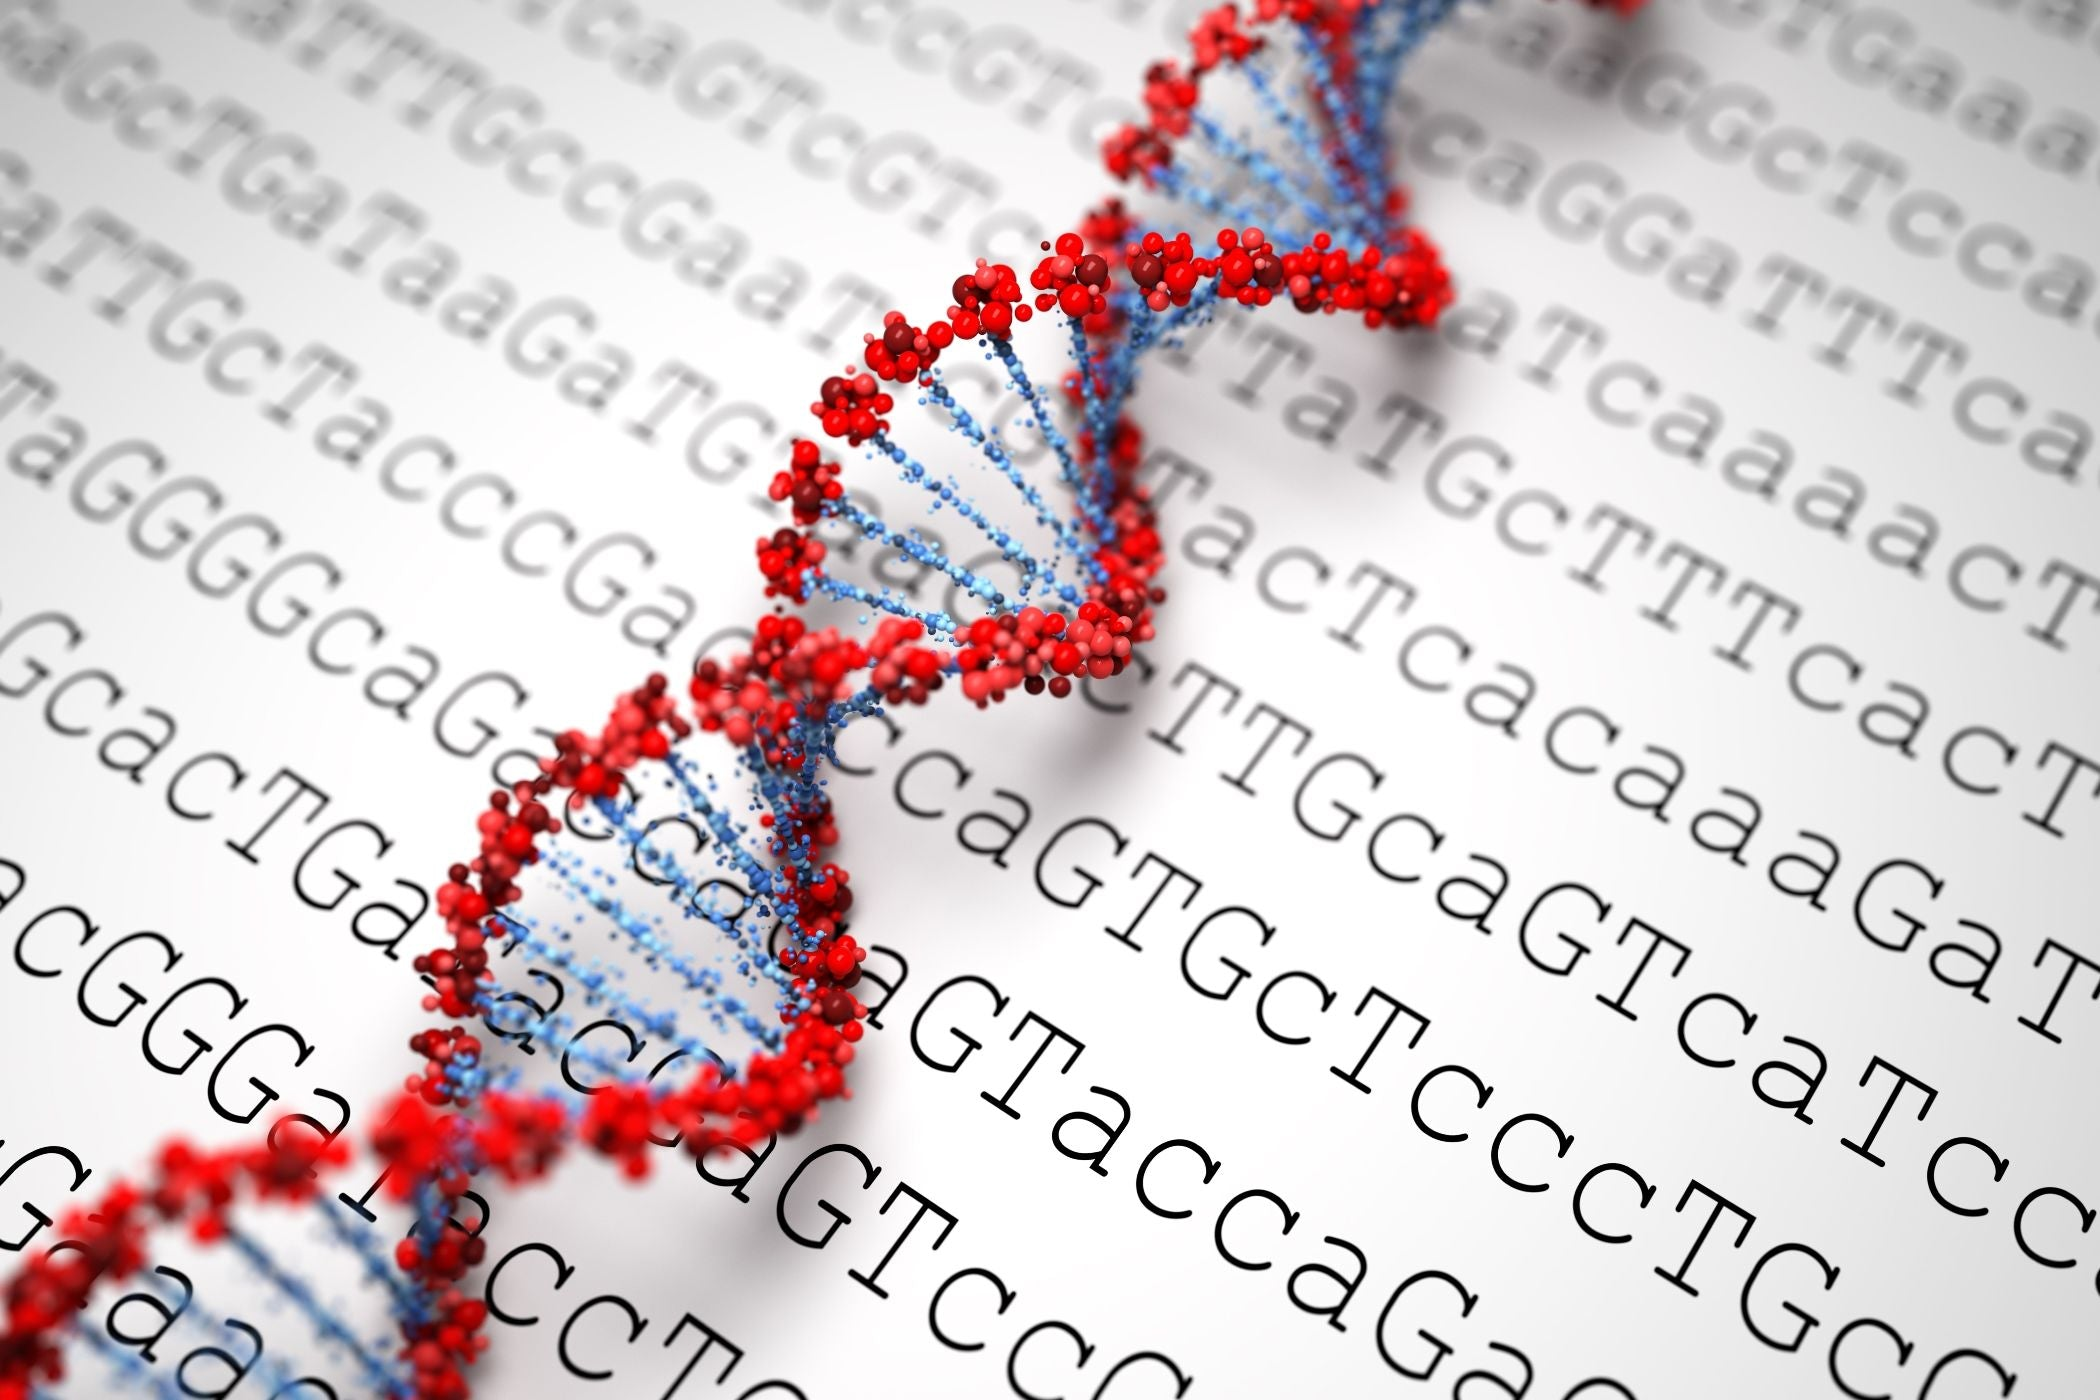 Genome Sequencing- Know The Scientific Approach Of DNA Analysis